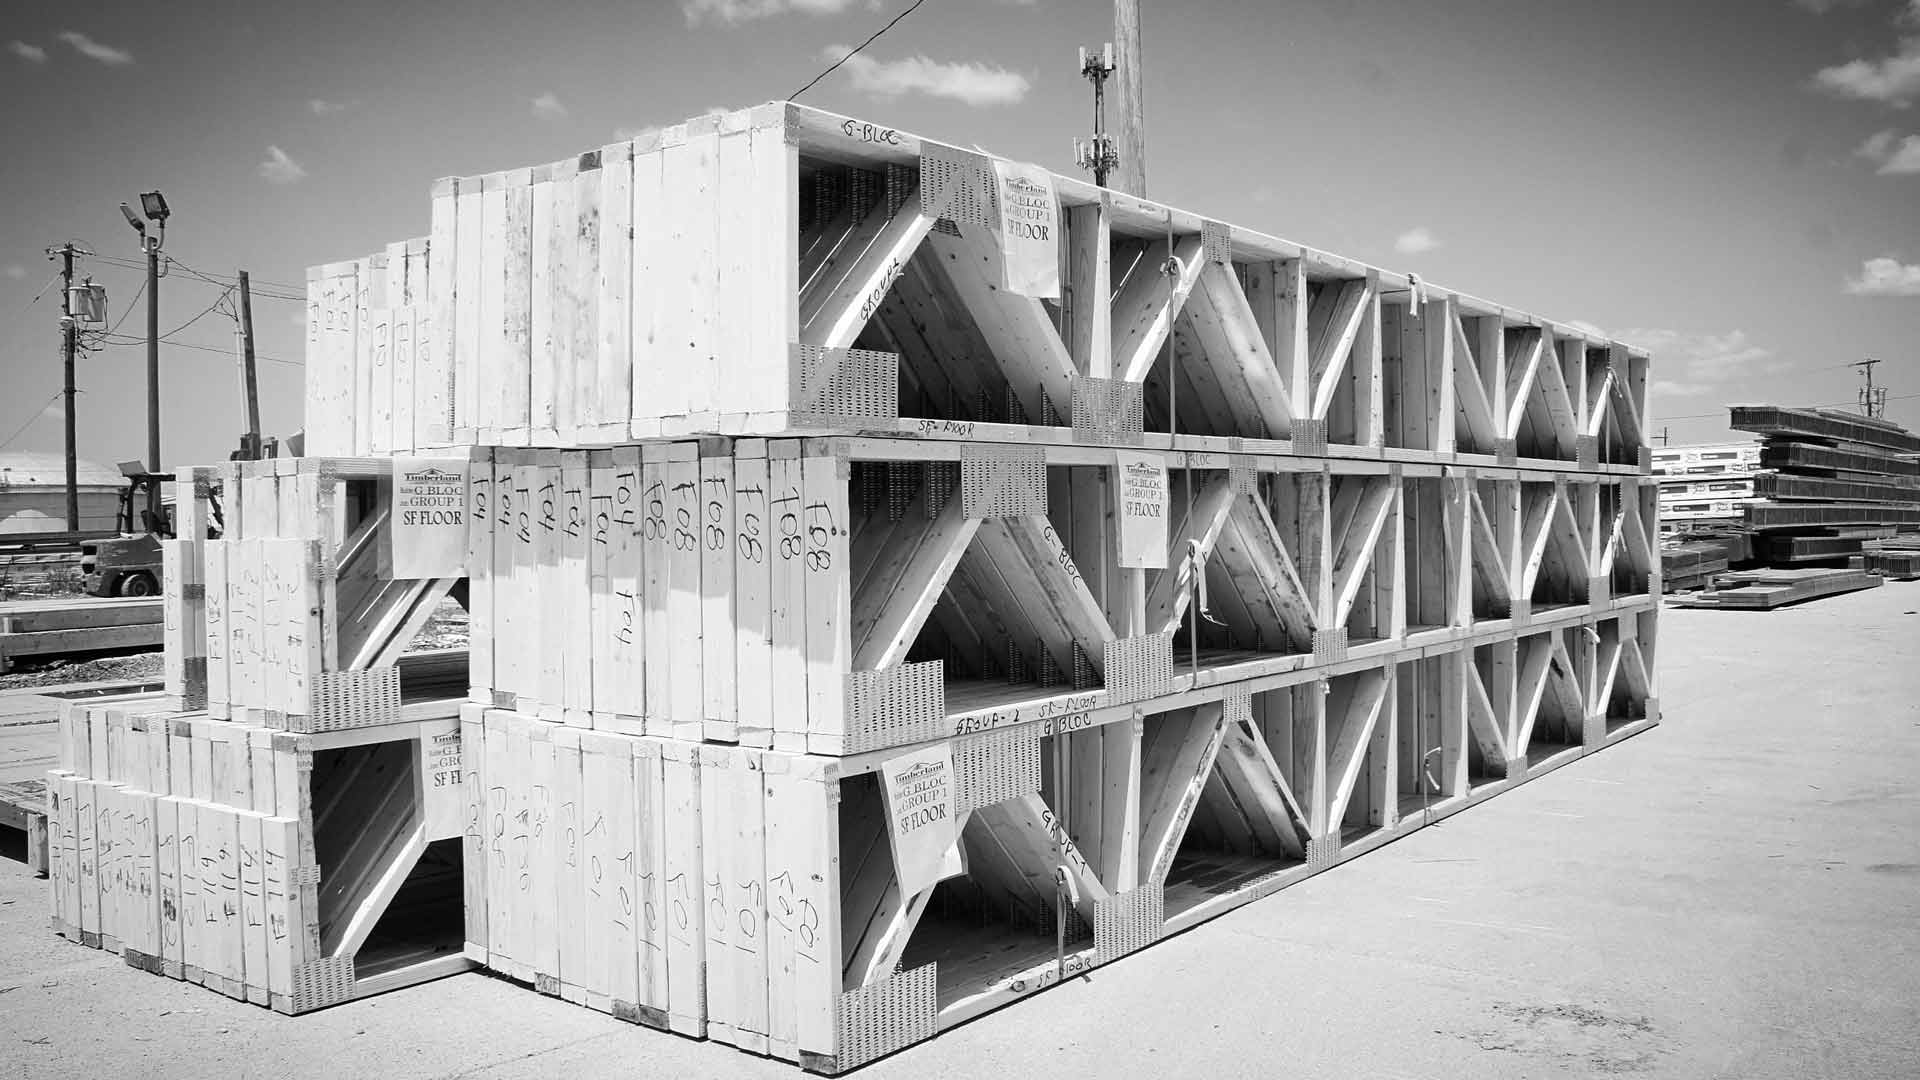 Wood Truss Fabrication (Yard Stock ready for site delivery) - G BLOC MIXED USE Development - Broad Ripple North Village - Urban Infill - Indianapolis